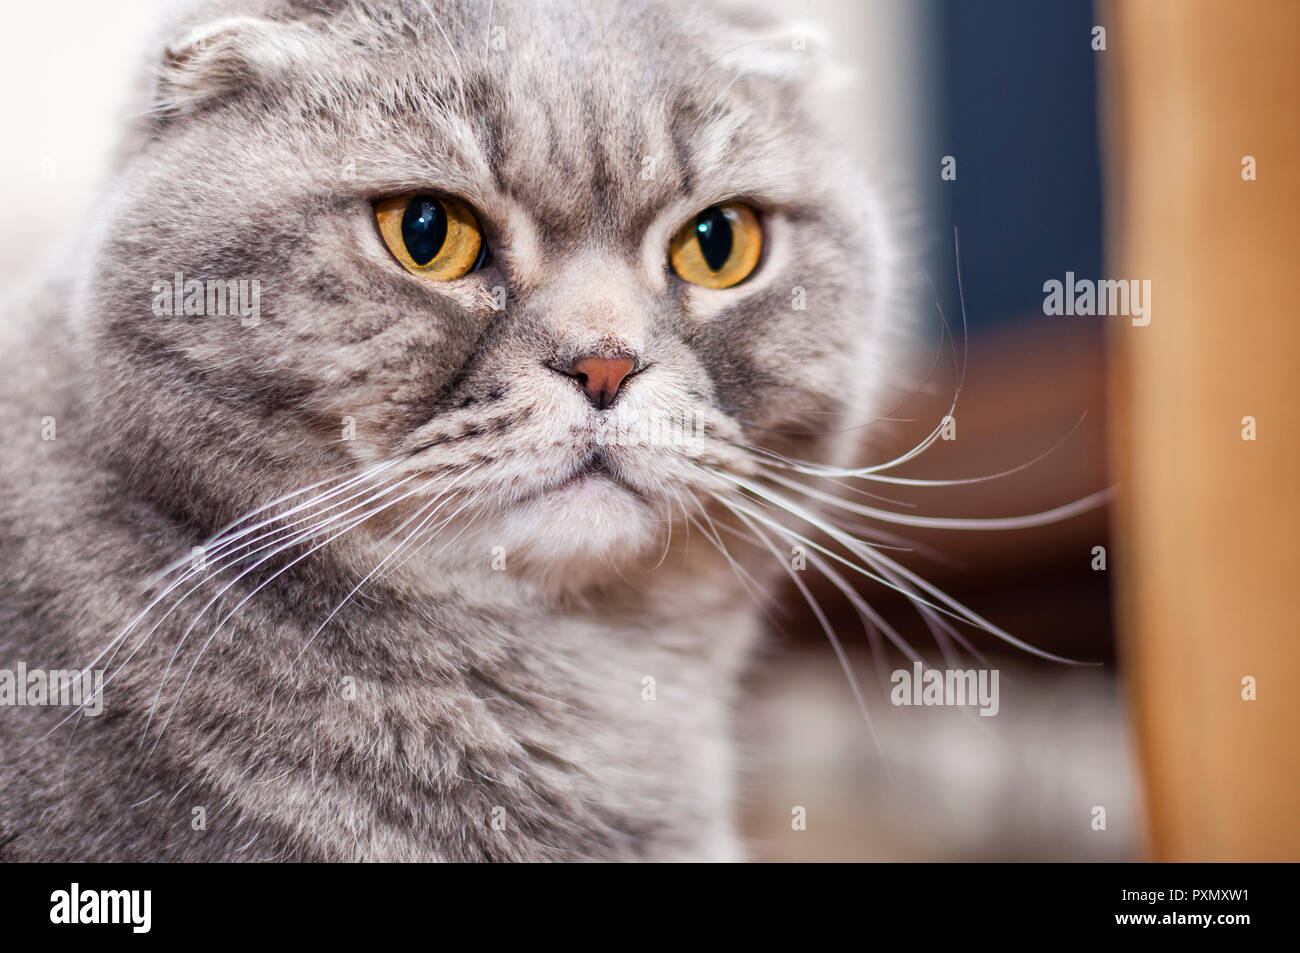 The Scottish Fold is a breed of domestic cat with a natural dominant-gene mutation that affects cartilage throughout the body, causing the ears to fol - Stock Image